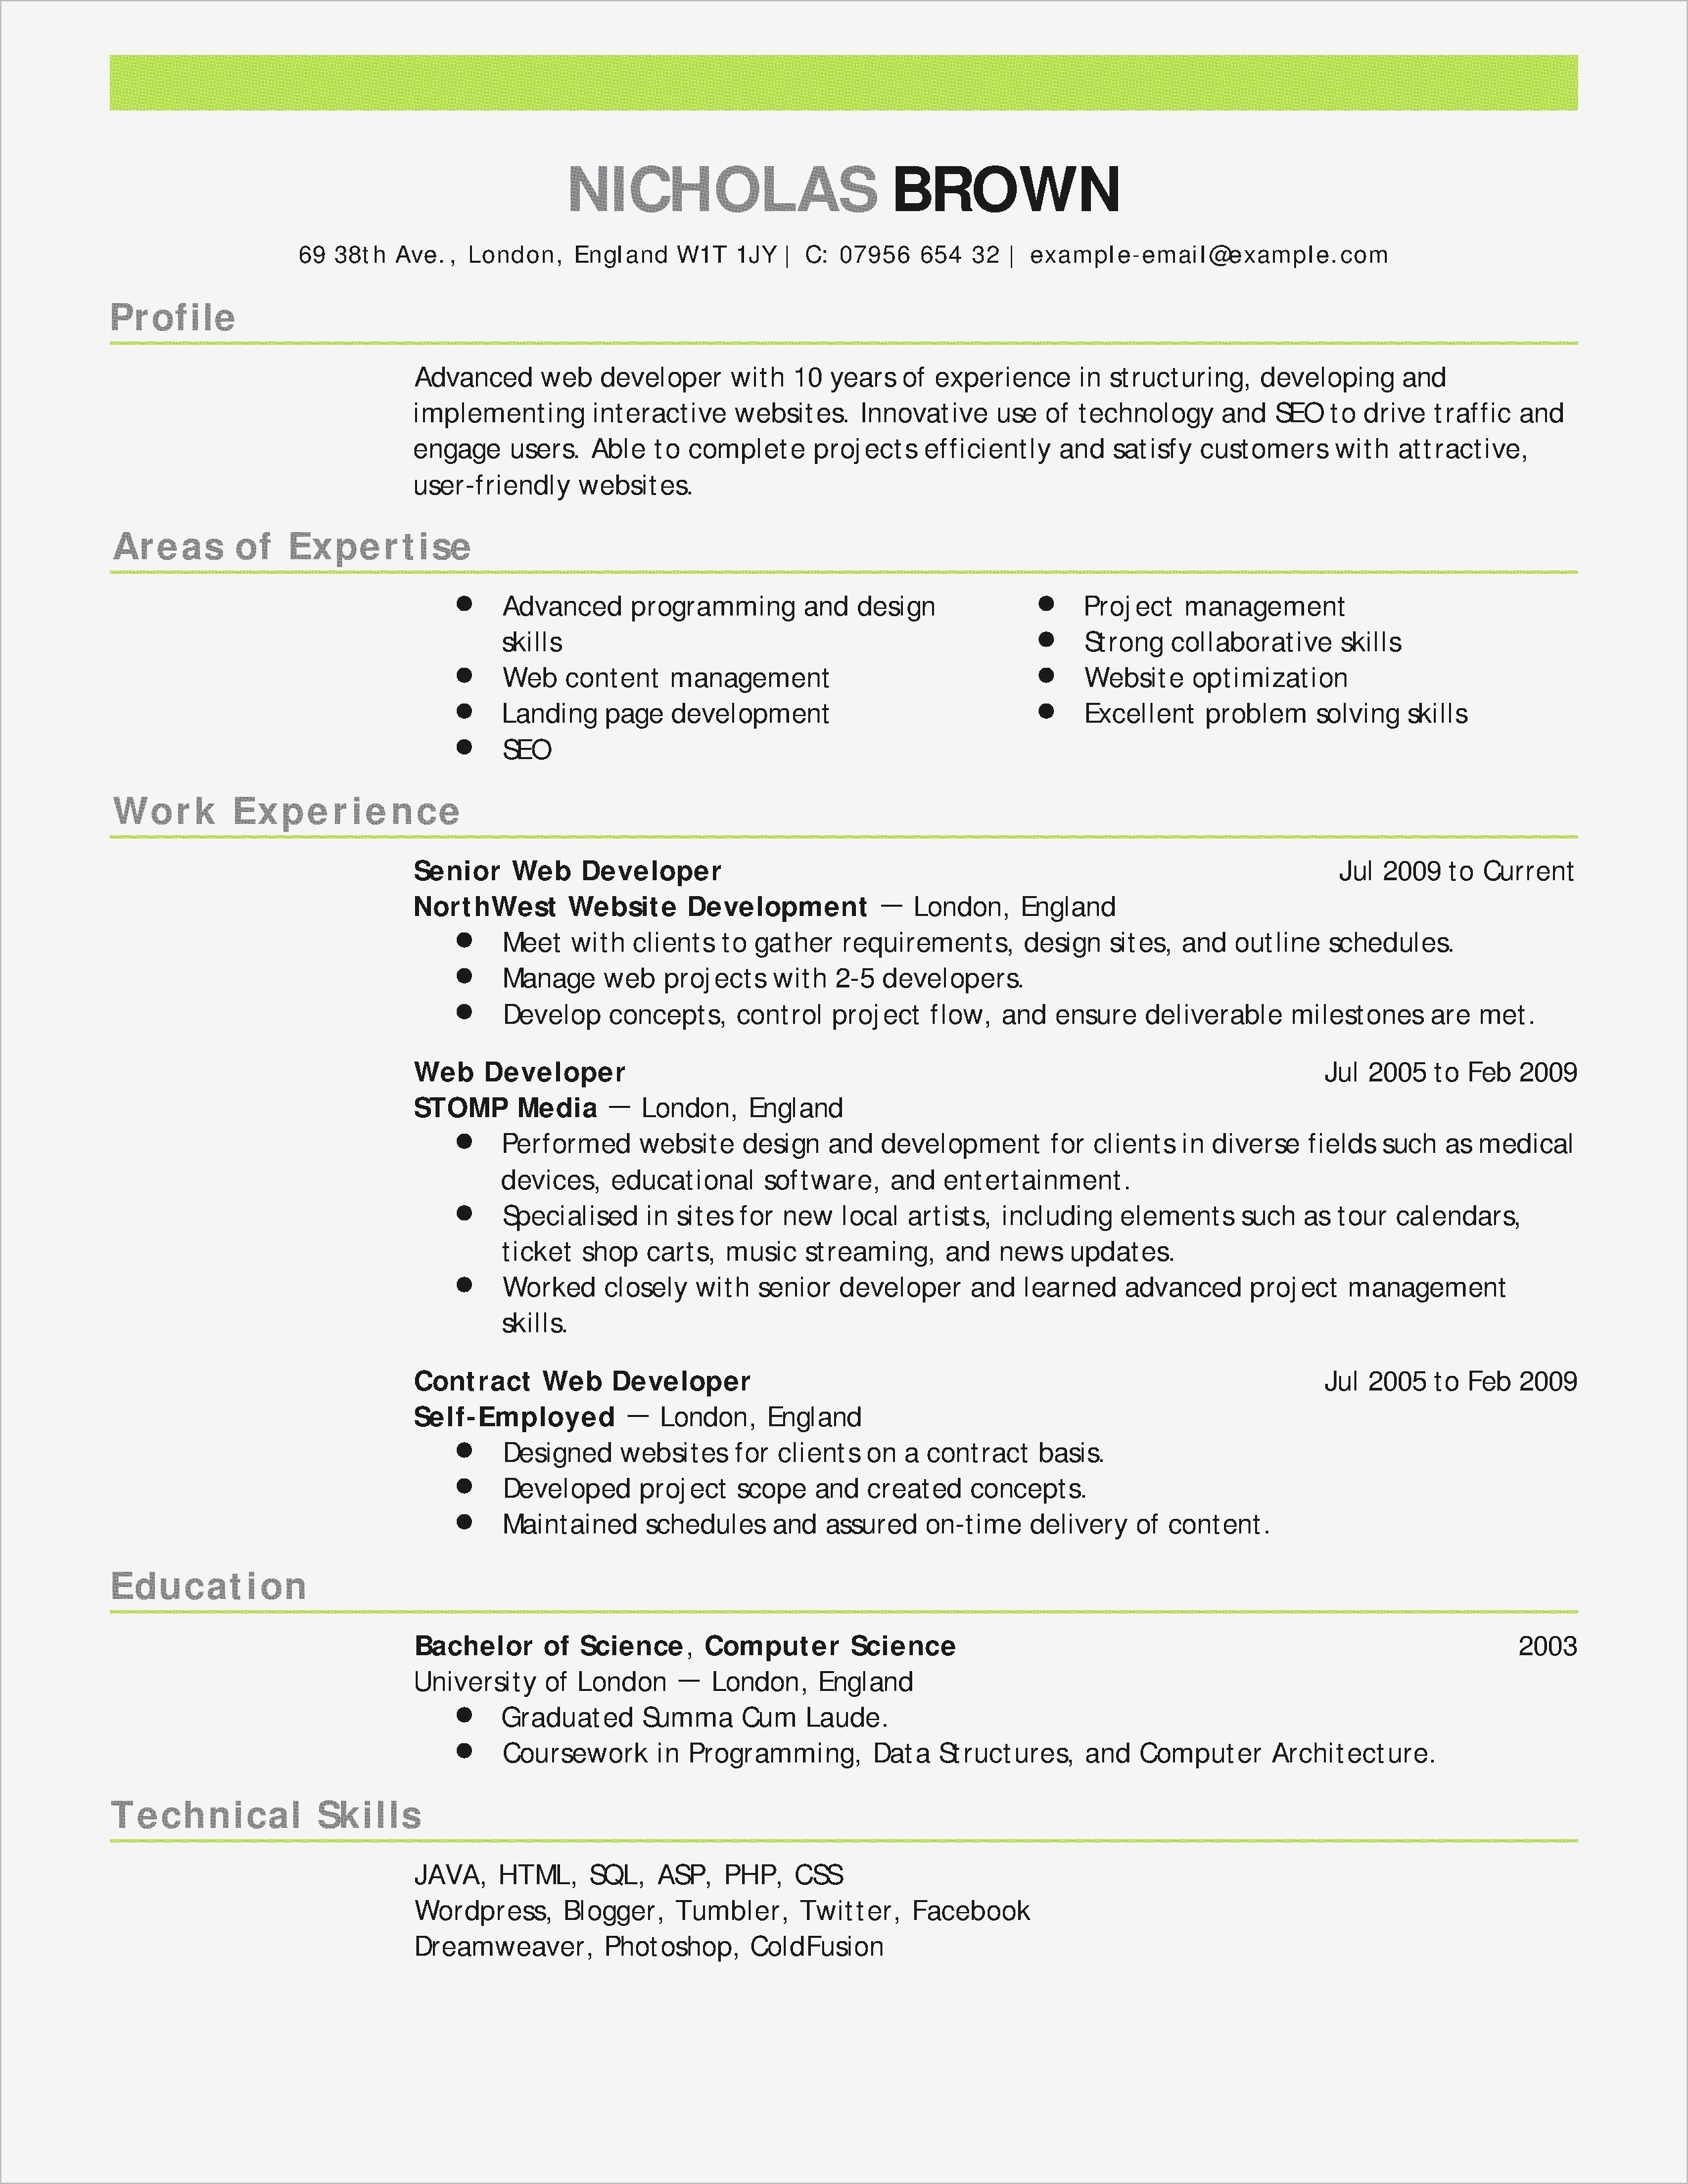 elementary teaching resume template Collection-Elementary Teacher Resume Template Valid Elementary Teacher Resume Sample Beautiful Resume Music 0d 8-e